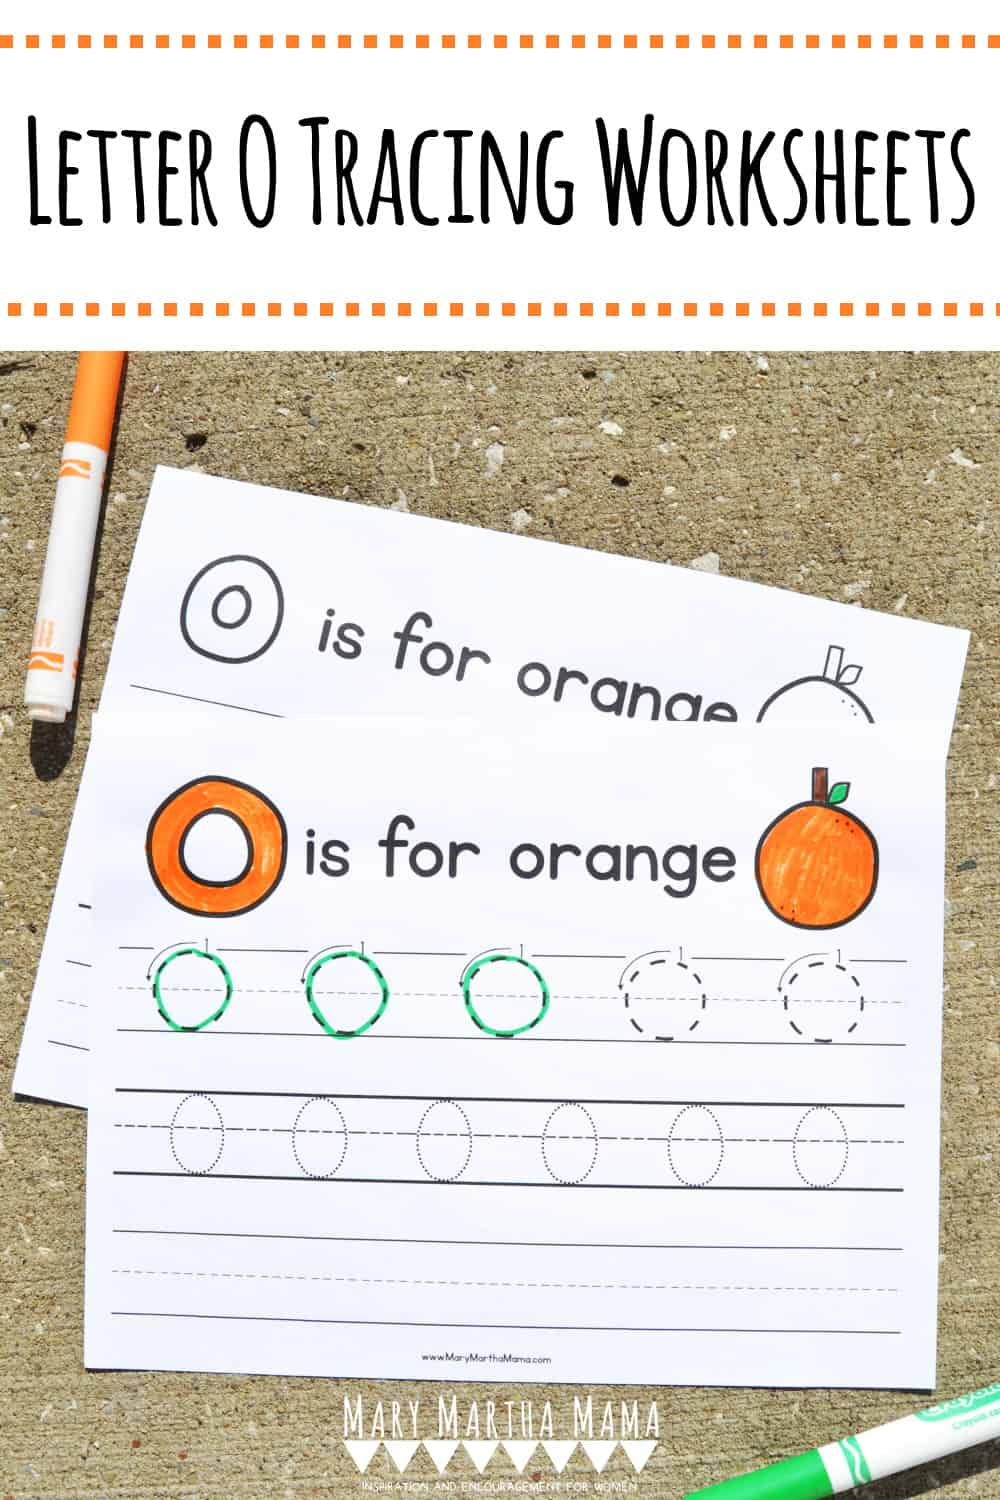 Use these free printable Letter O Tracing Worksheets to help your kiddo learn proper letter formation for upper and lower case O.